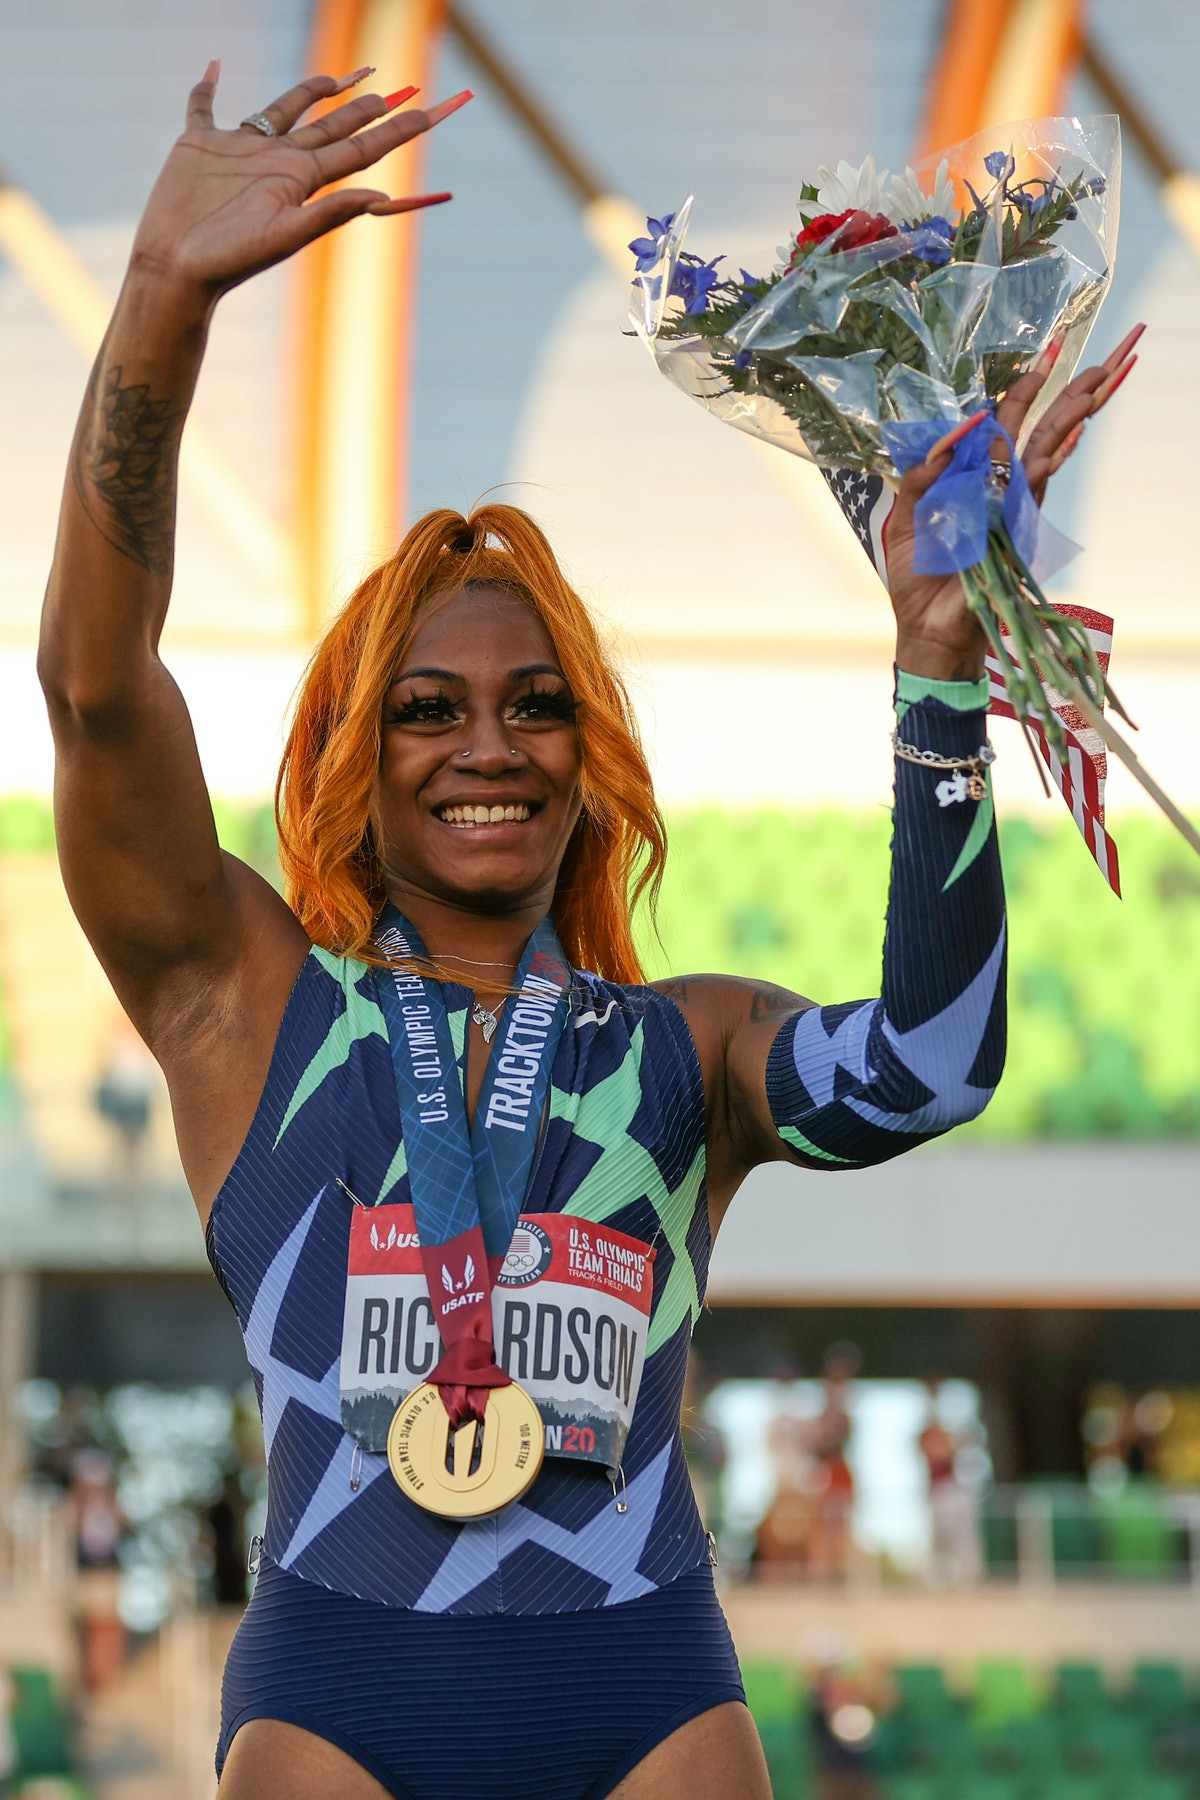 This petition to let Sha'Carri Richardson run in the Olympics brings up some valid points.